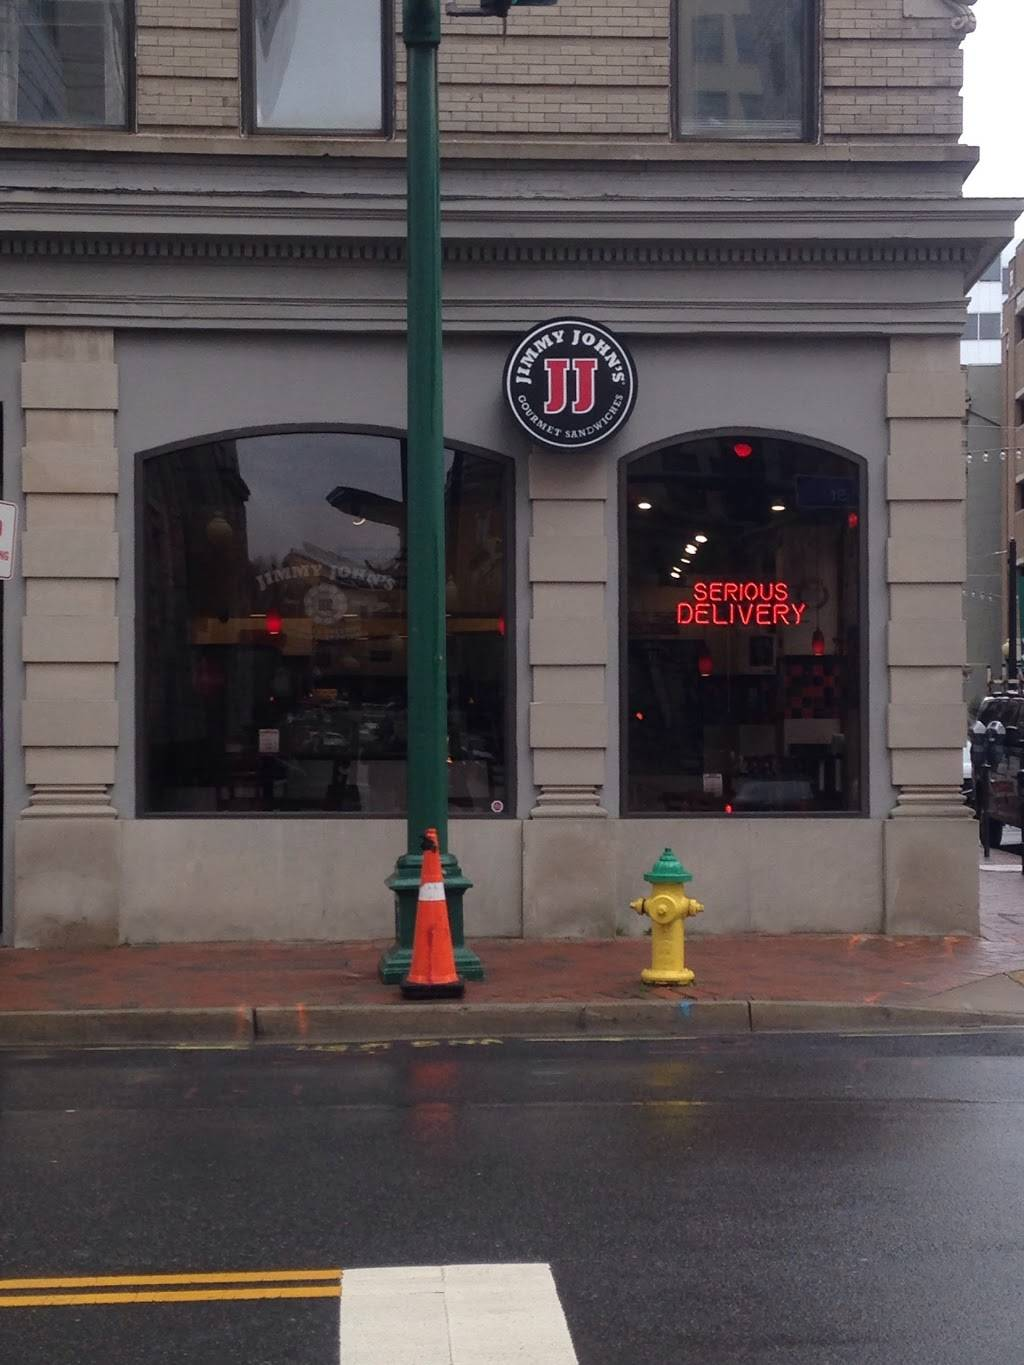 Jimmy Johns | meal delivery | 140 Granby St, Norfolk, VA 23510, USA | 7579657600 OR +1 757-965-7600